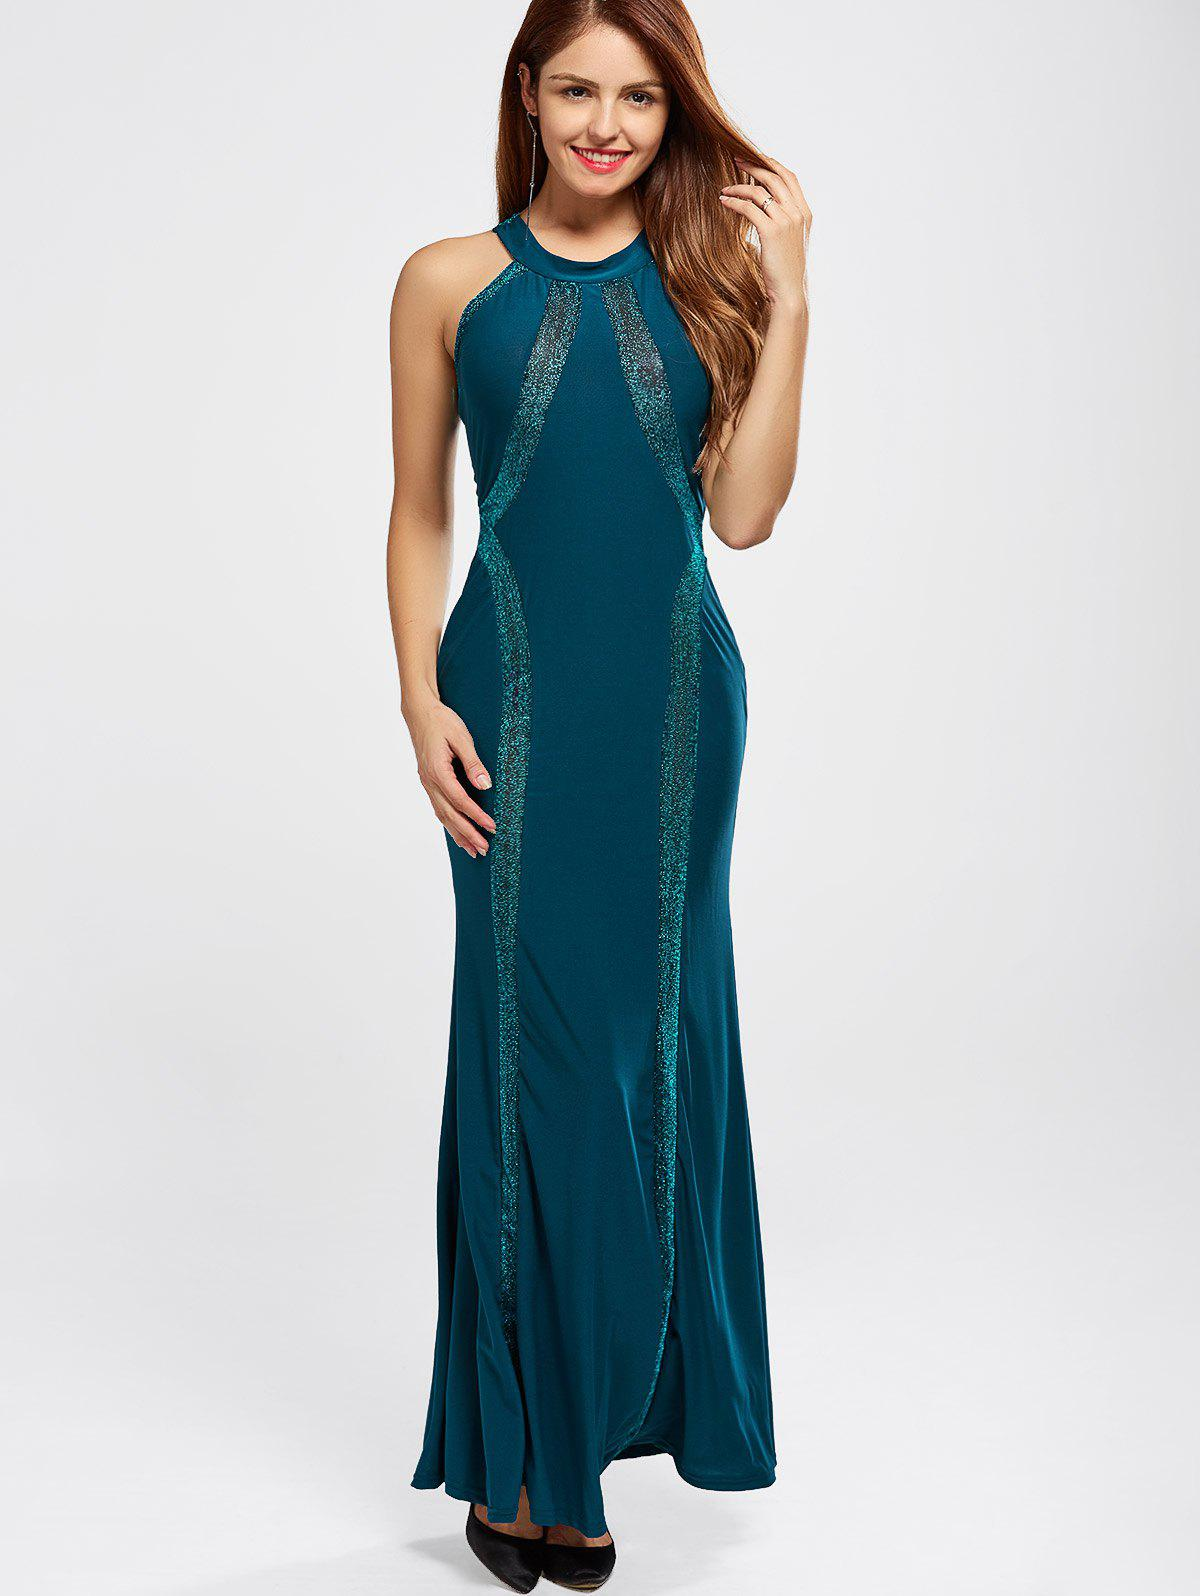 Maxi Fitted Racerback Prom Evening Dress - PEACOCK BLUE M